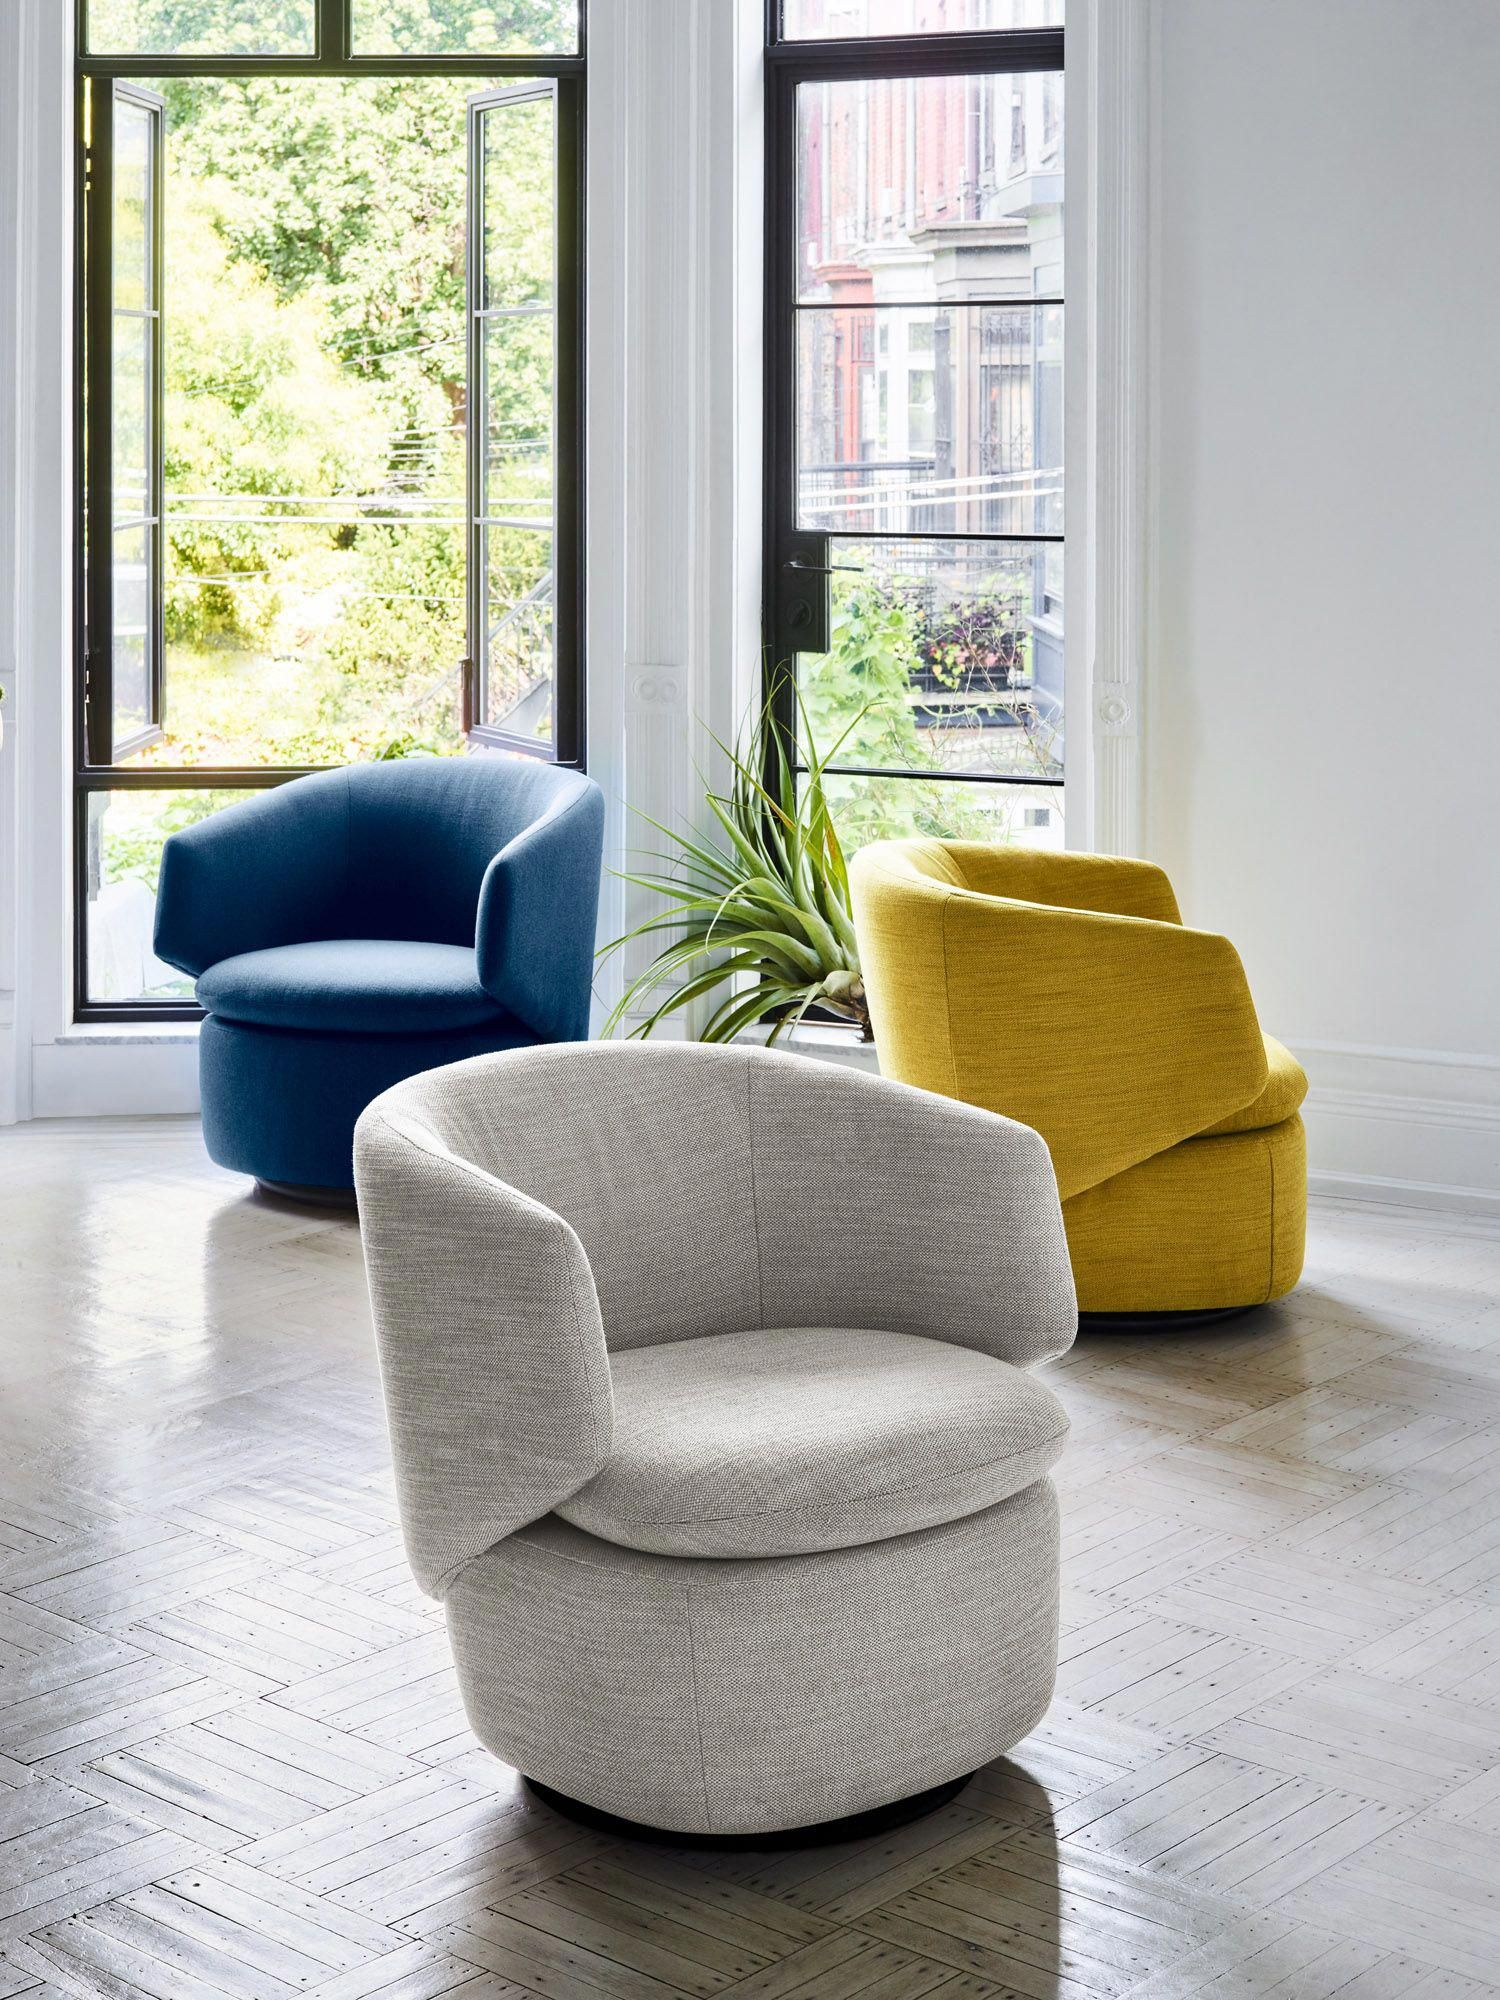 west elm west elm west elm how to decorate with accent chairs rh pinterest com